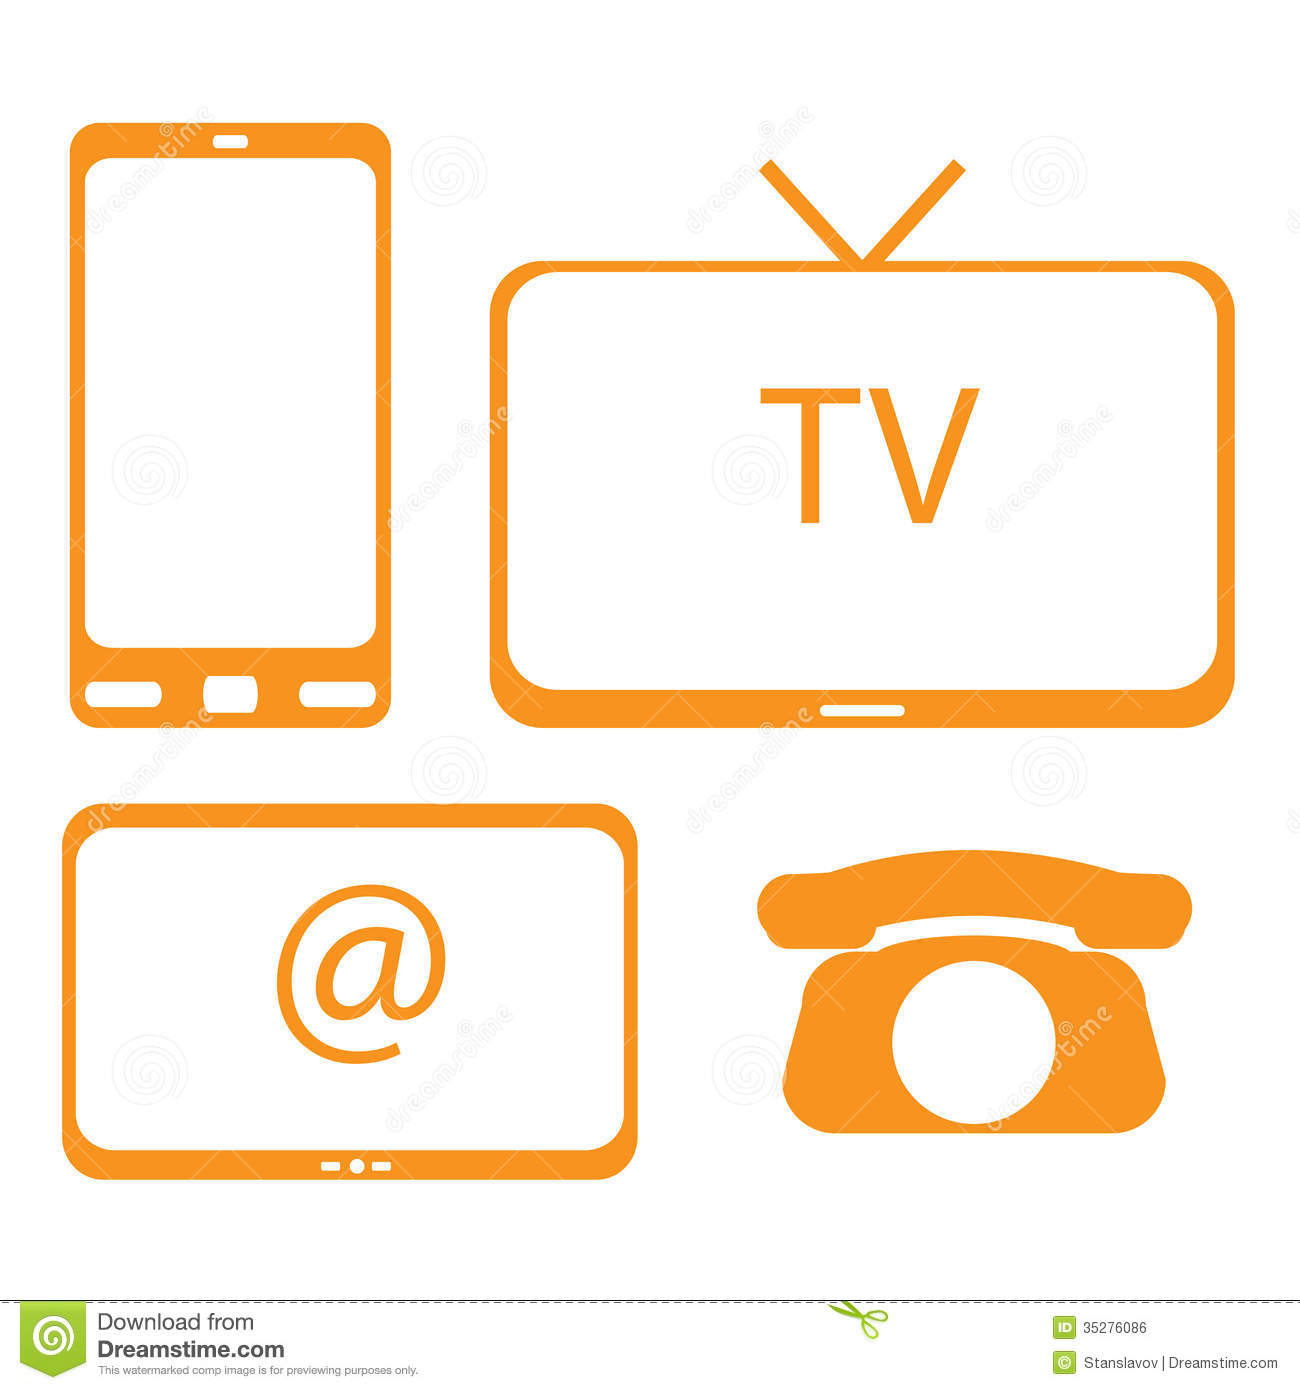 Tv, Mobile Phone, Internet And Home Phone Stock. Florida Rn To Bsn Programs Seven Pest Control. Associates Degree Nursing Online. Best Rated Medicare Supplement Plans. Business Funding Opportunities. At&t Wireless Internet Deals. Houston Community Foundation. Lawyer In Fayetteville Nc Full Service Agency. Dish Tv Packages Deals Log Monitoring Service